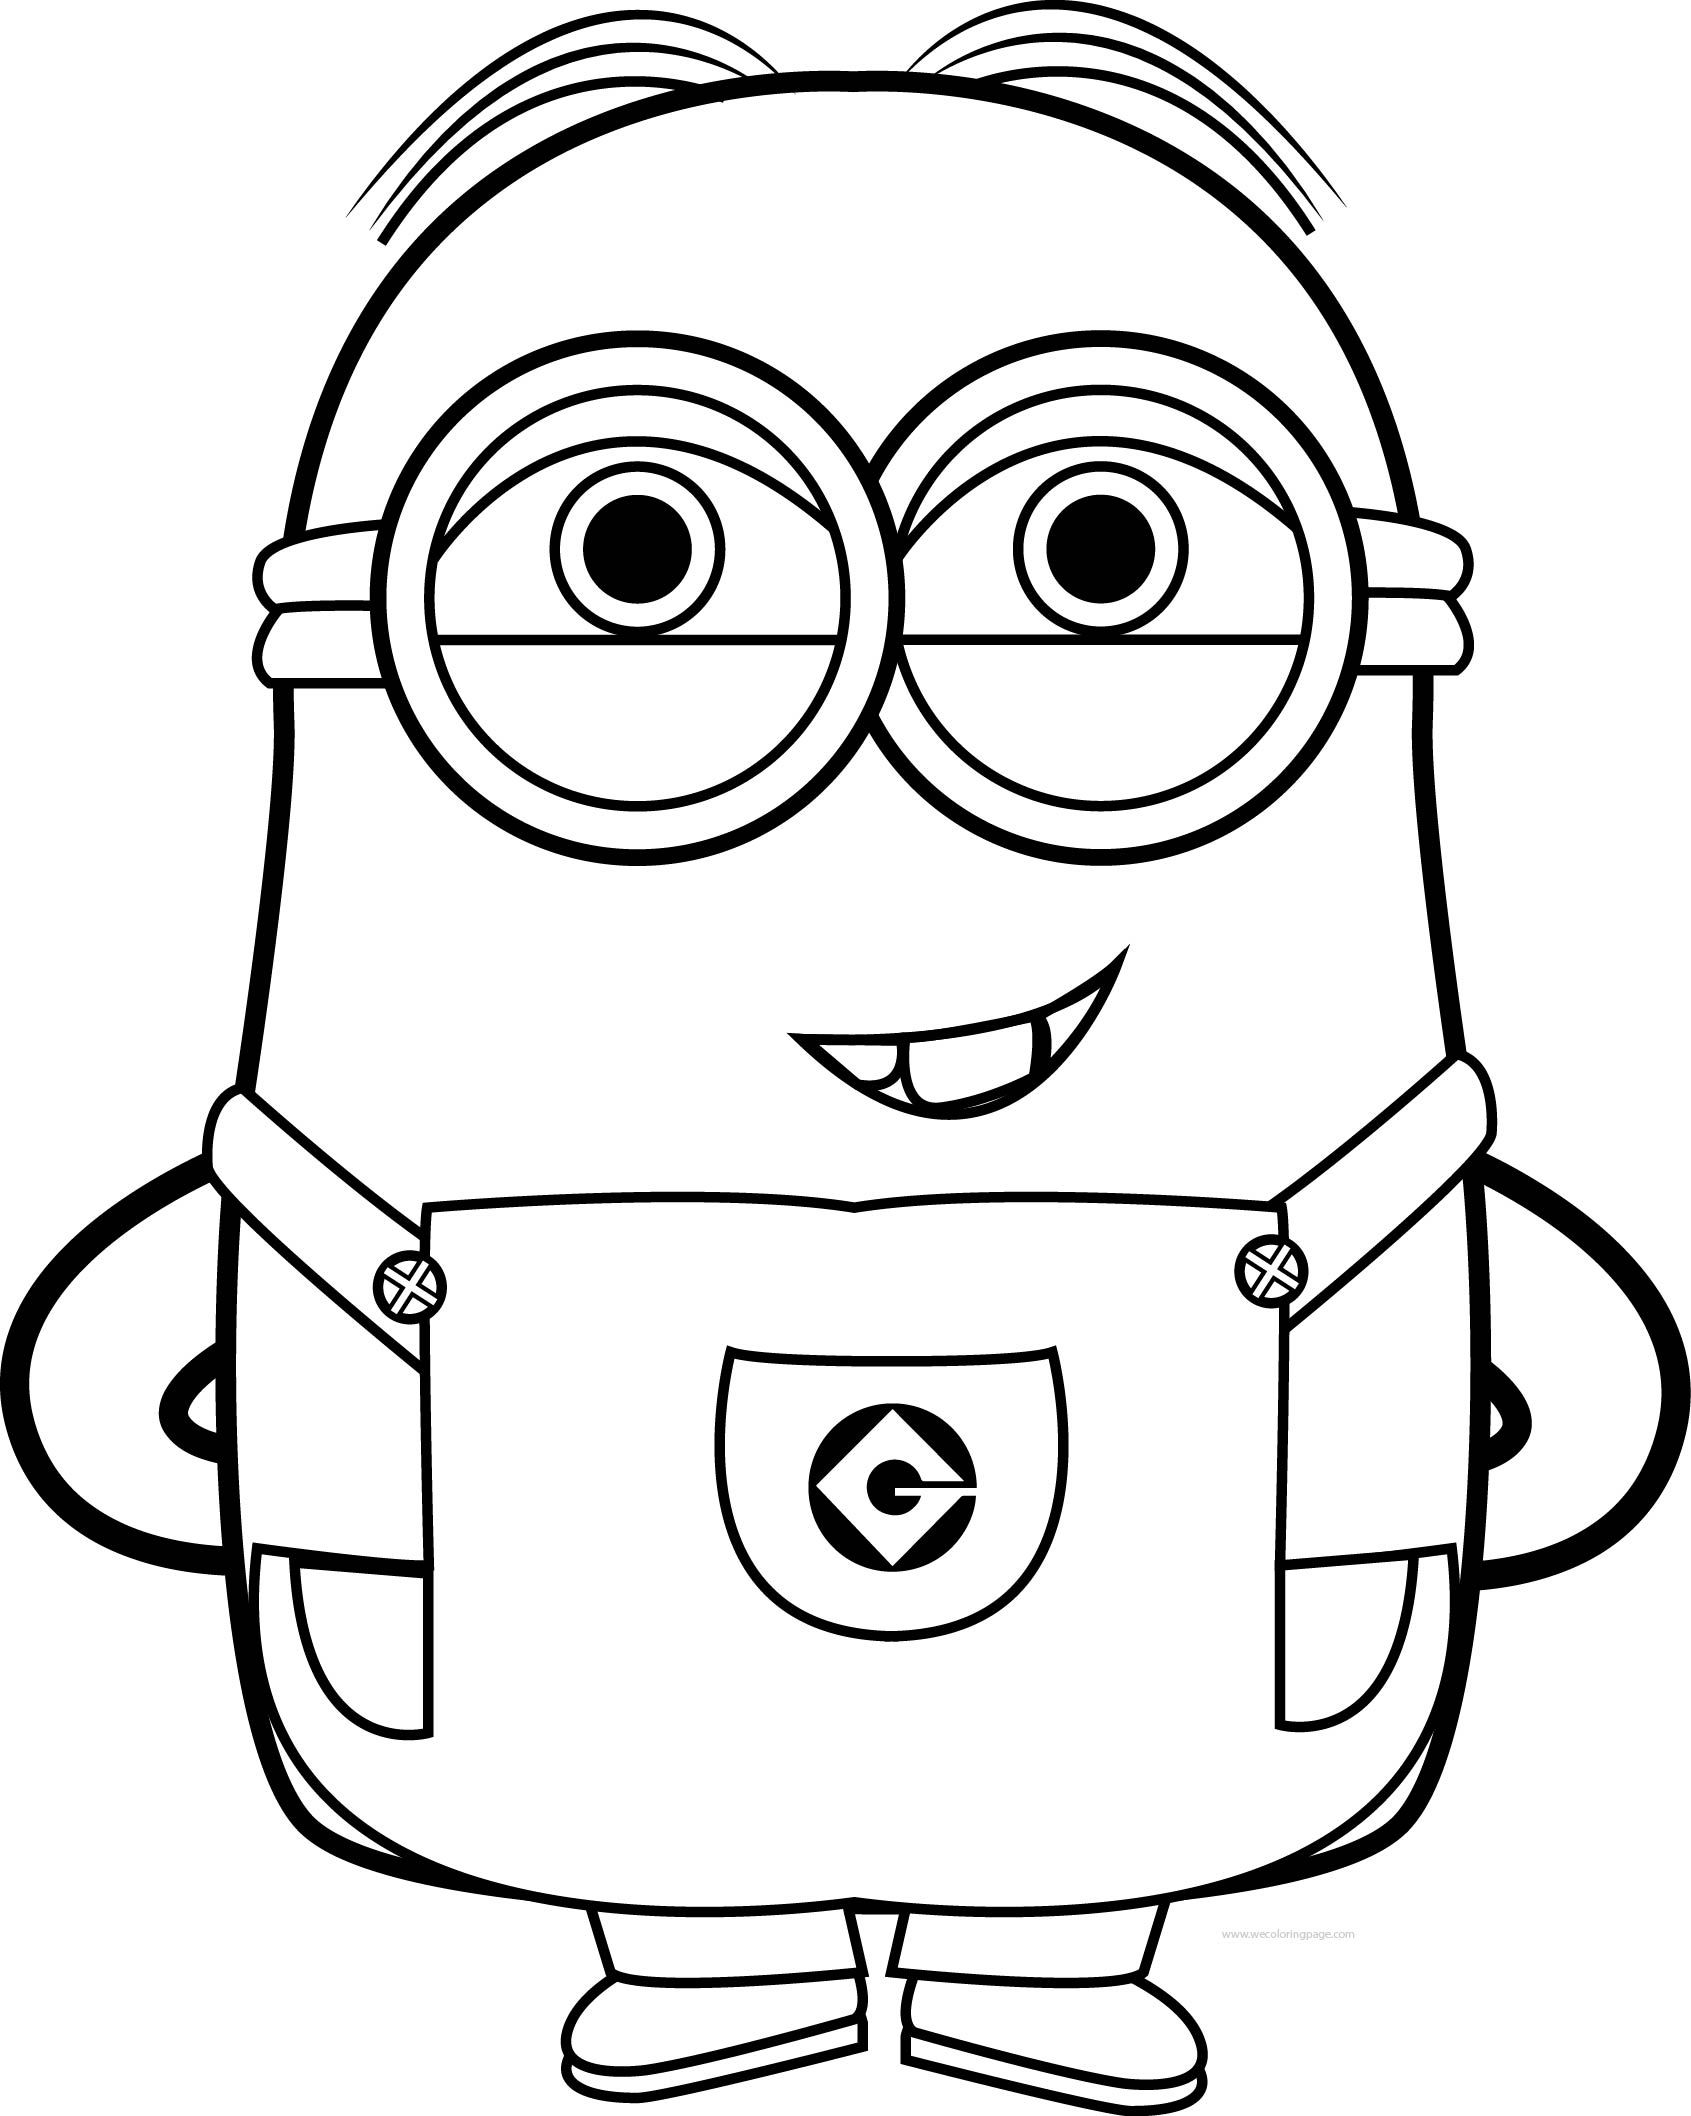 coloring minion pages minion coloring pages fotolipcom rich image and wallpaper minion pages coloring 1 1